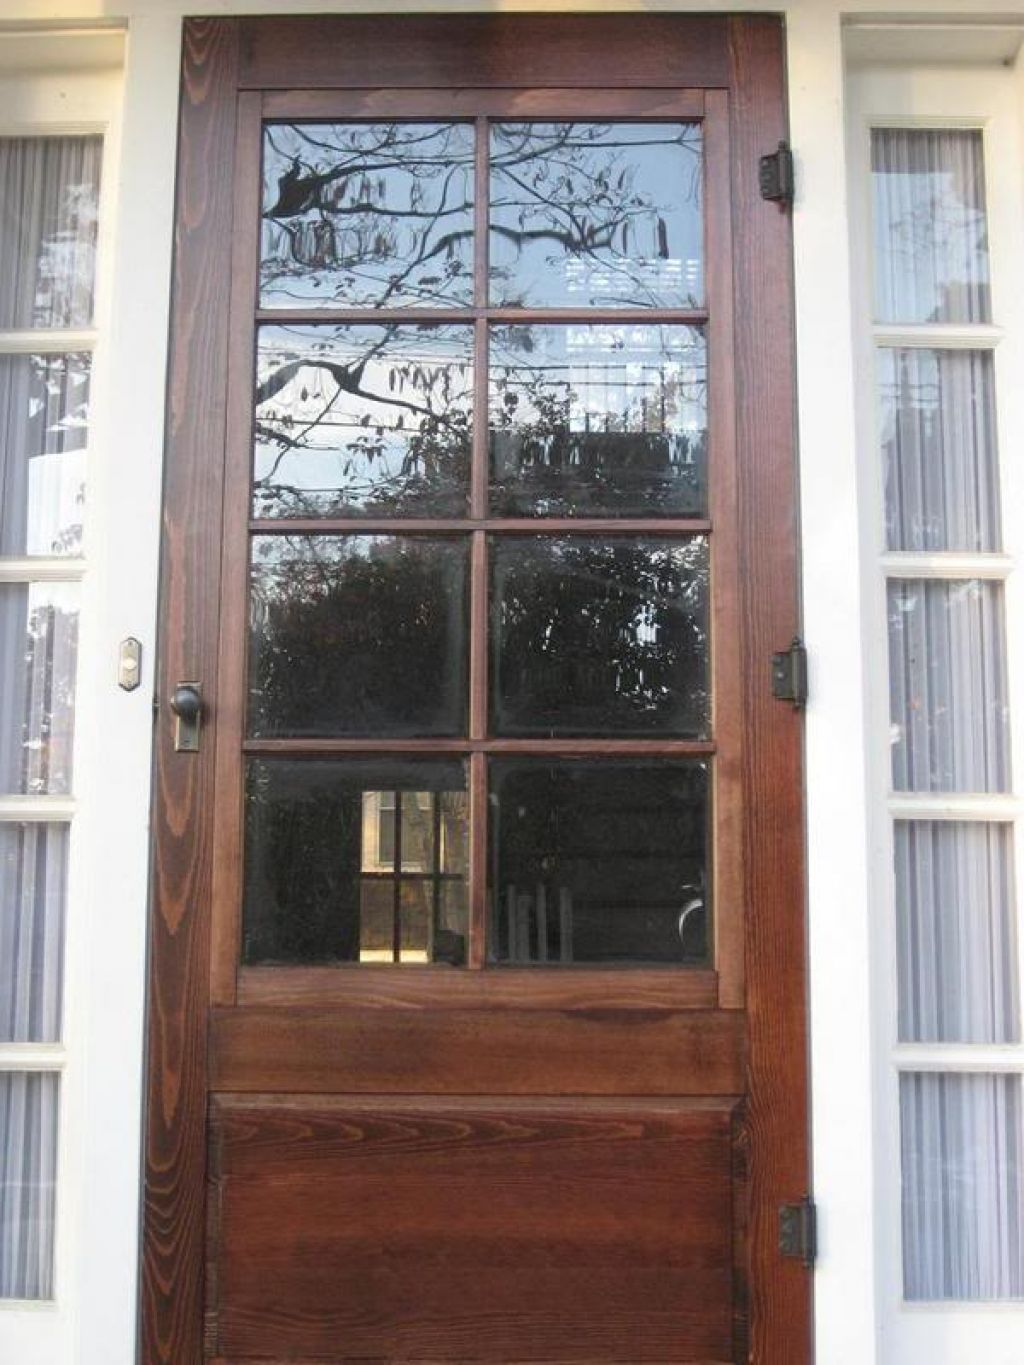 Vintage Styled Wood Storm Door With Solid Teak Wood Material Built In And  Using Clear Glass For The Door Panels - Vintage Styled Wood Storm Door With Solid Teak Wood Material Built